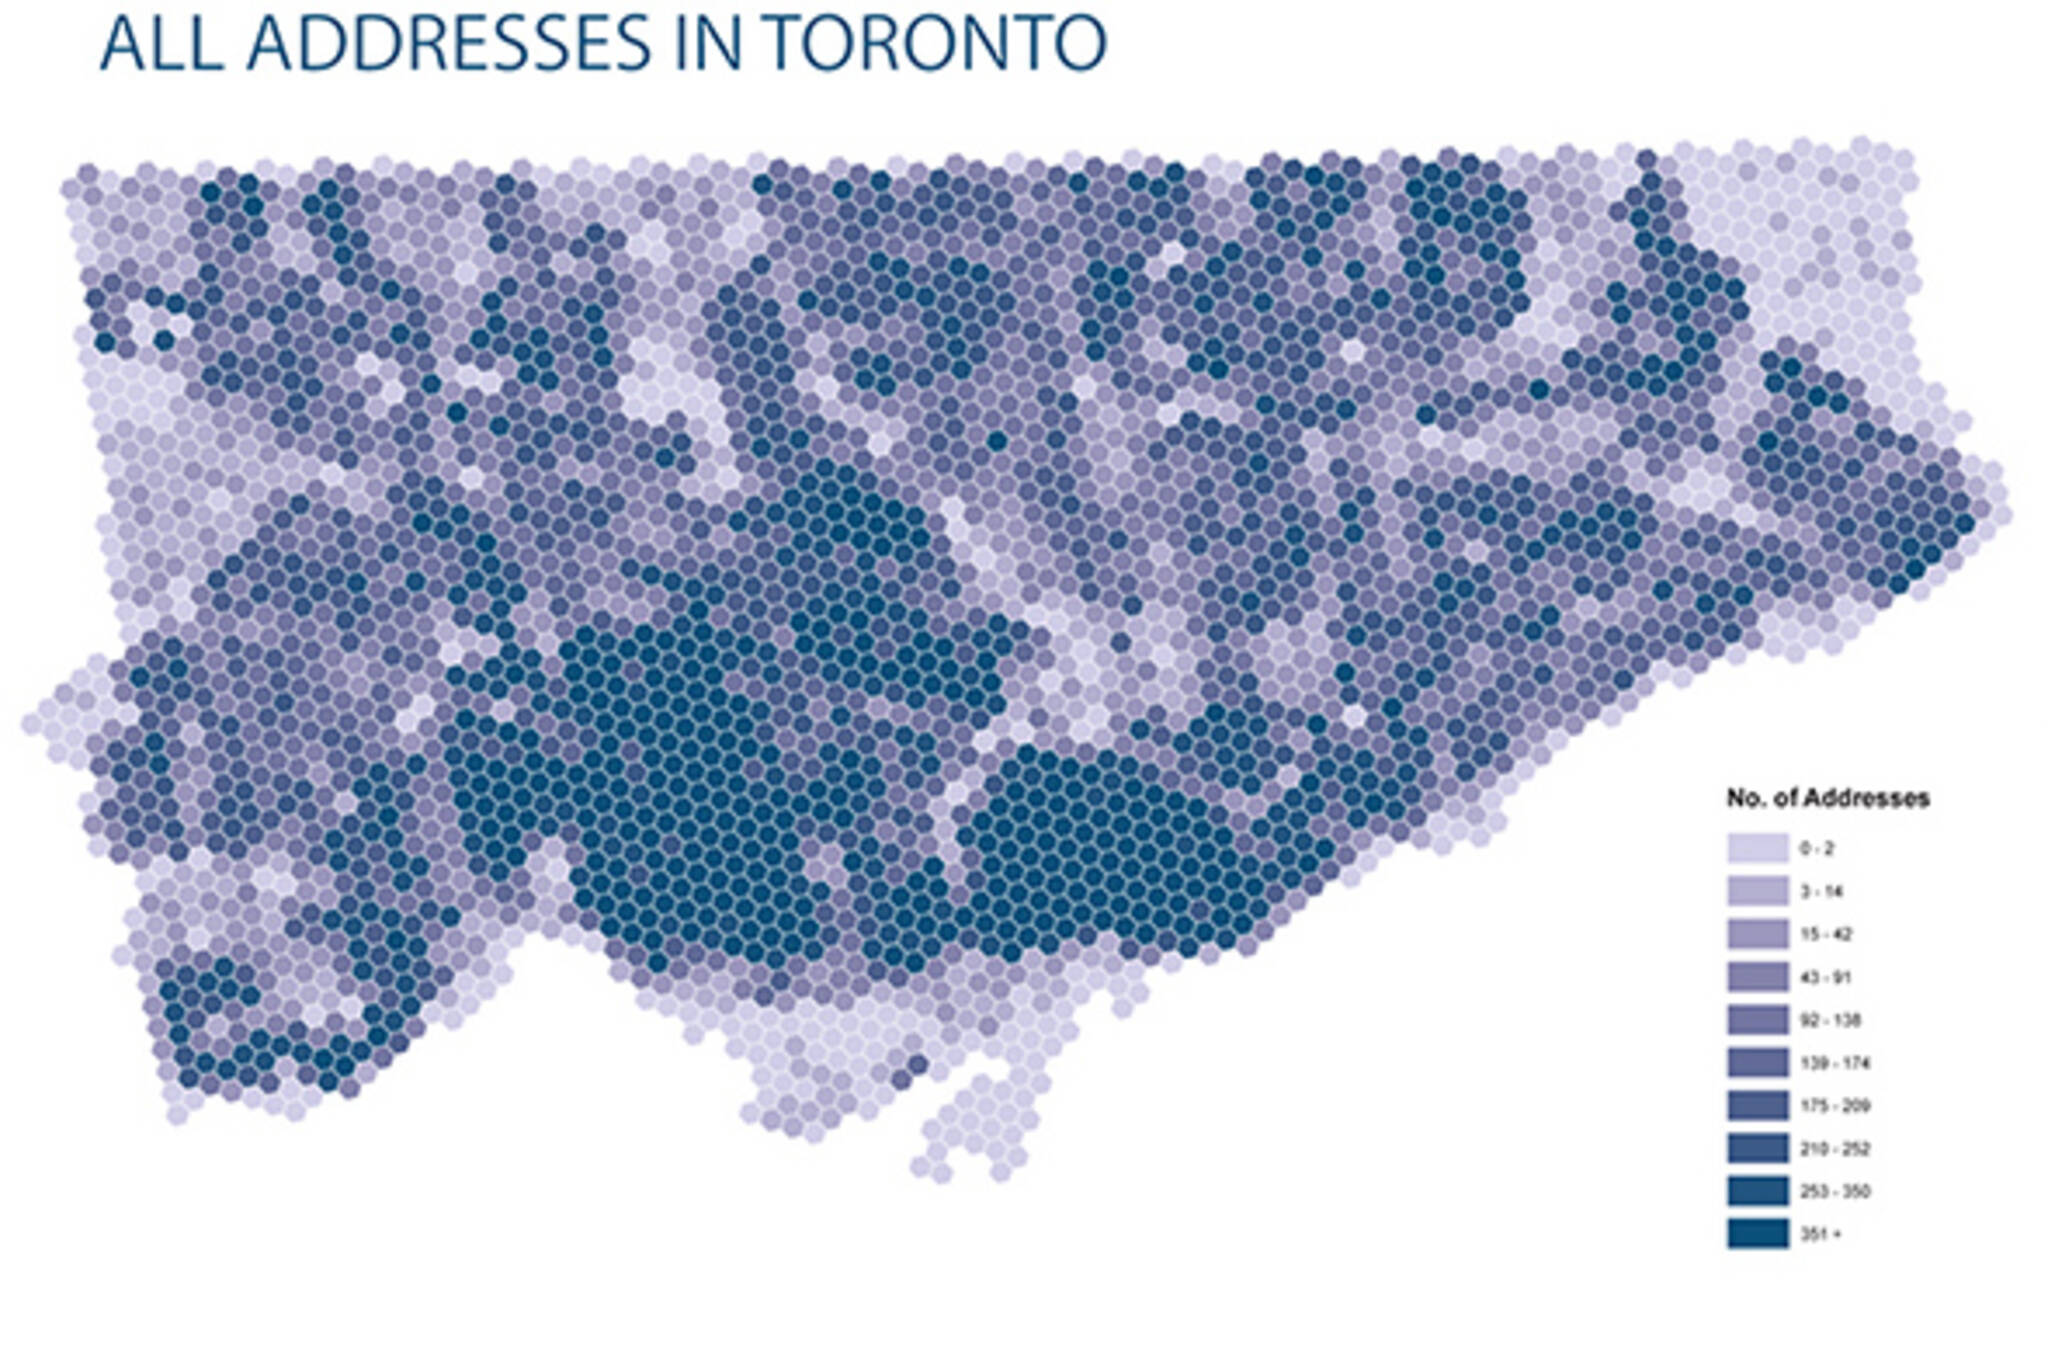 Toronto addresses